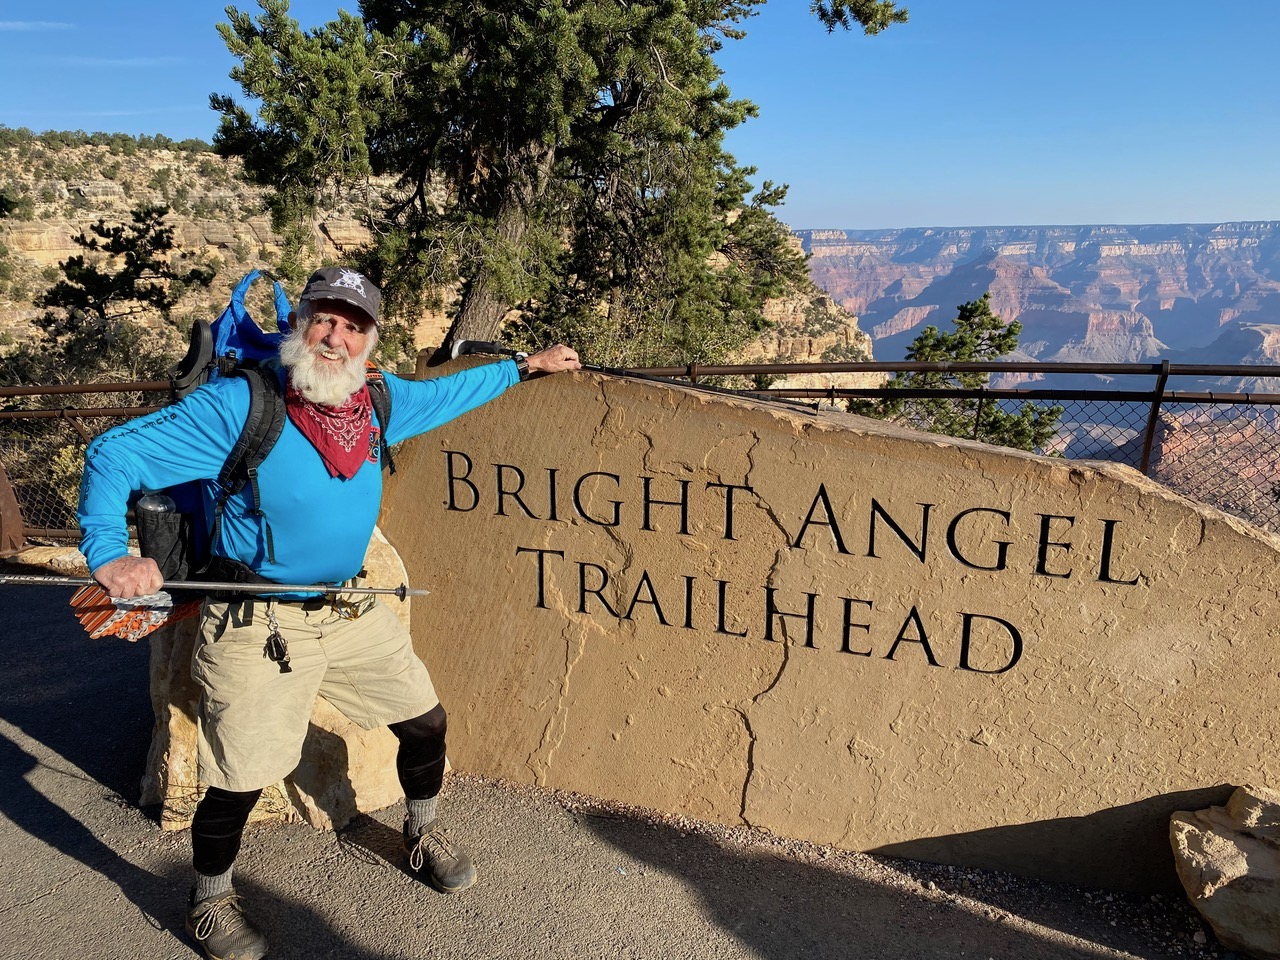 85-Year-Old Thru-Hiker Dale Sanders Just Lapped The Grand Canyon